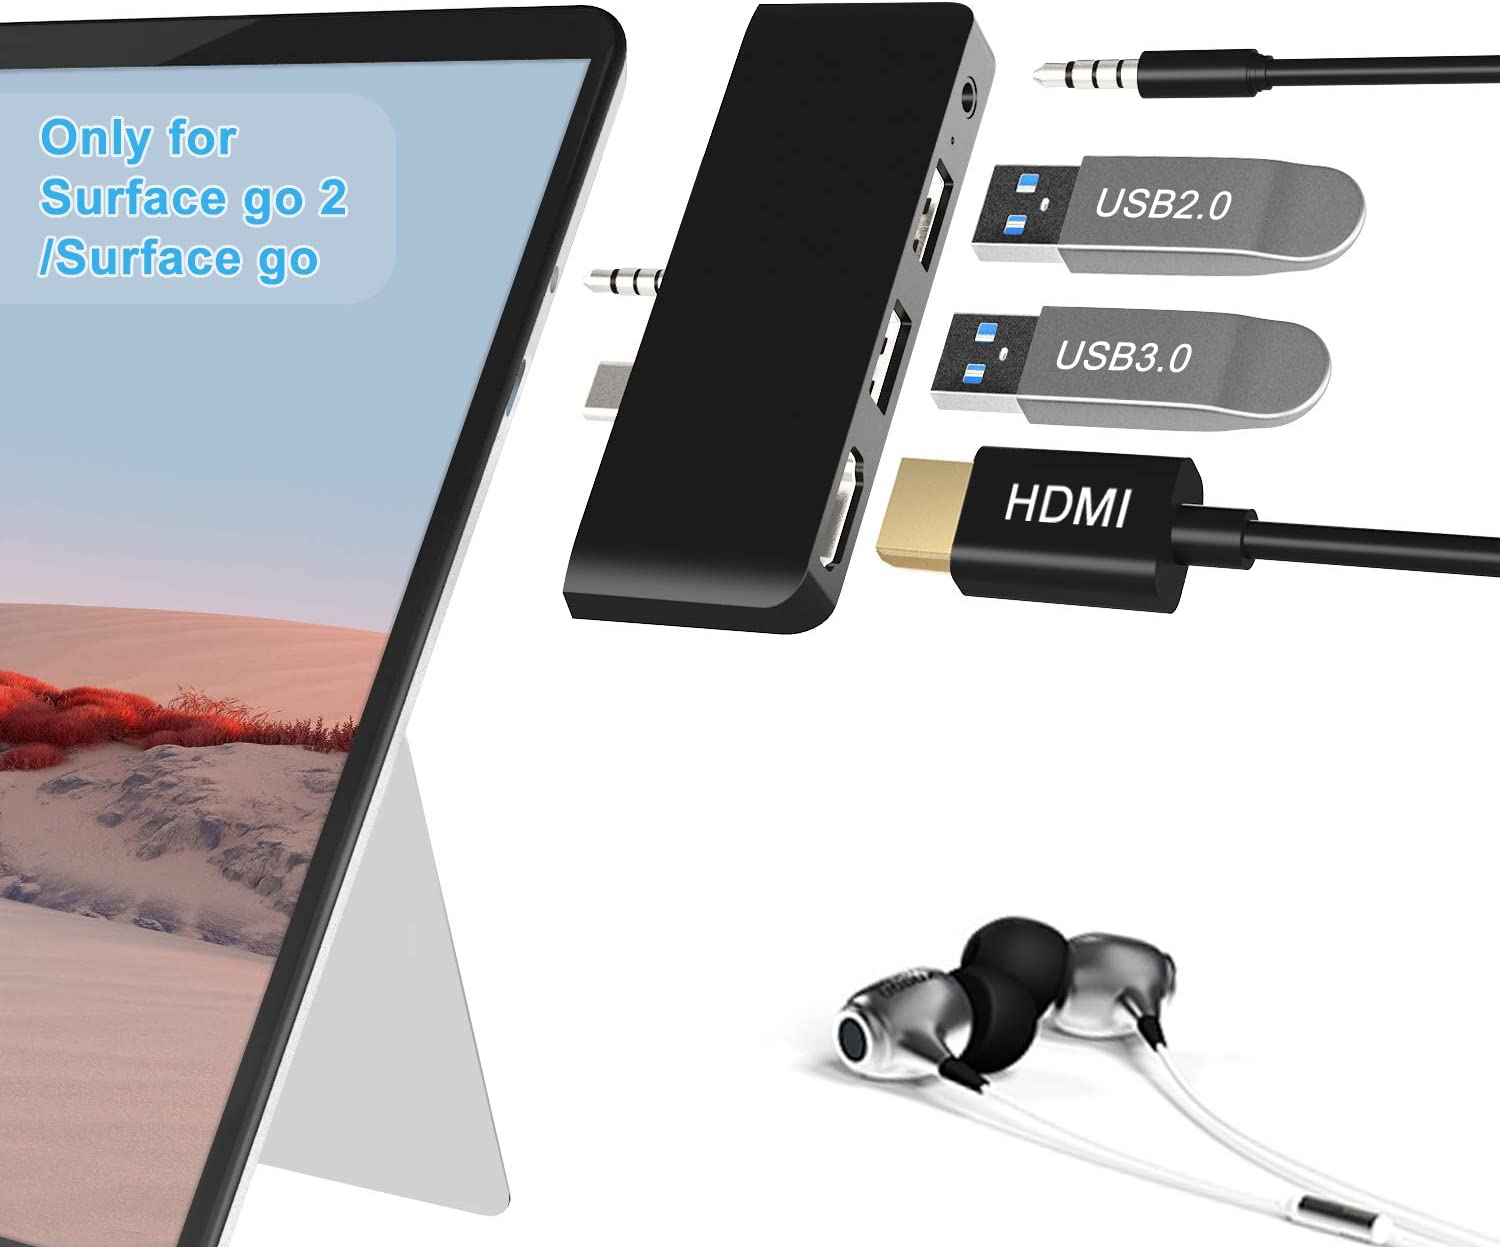 Cateck Surface Go Docking Station, 4 in 1 Surface Go 2 USB C Adapter with HDMI Support 4K, USB 3.0/2.0 Port Hub, 3.5mm Audio/Headphone Jack, Portable Adapter for Surface Go/Go 2 Accessories